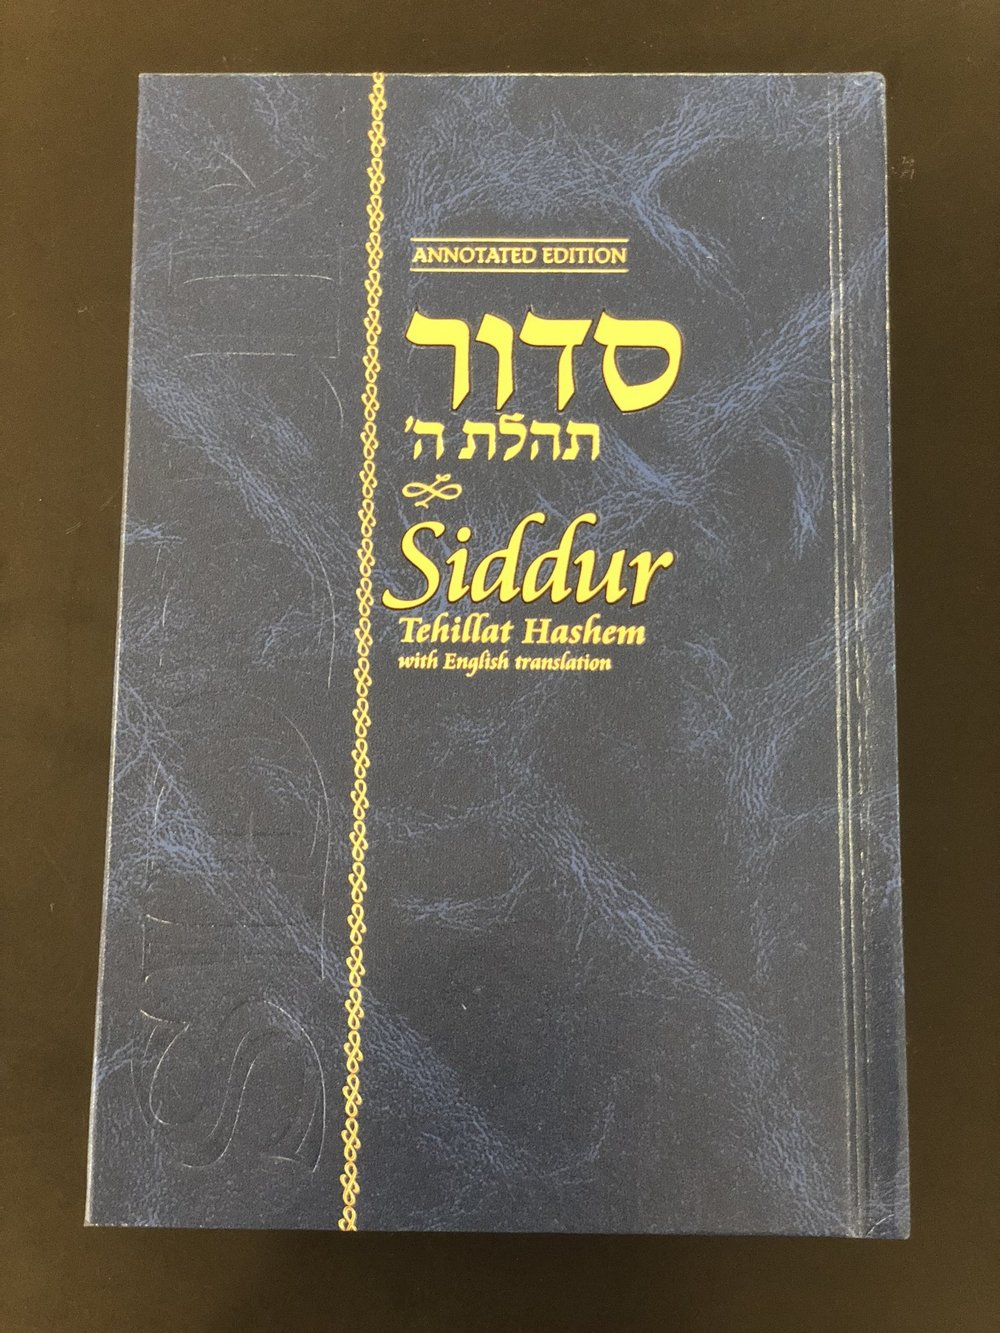 Siddurs and Jewish Books